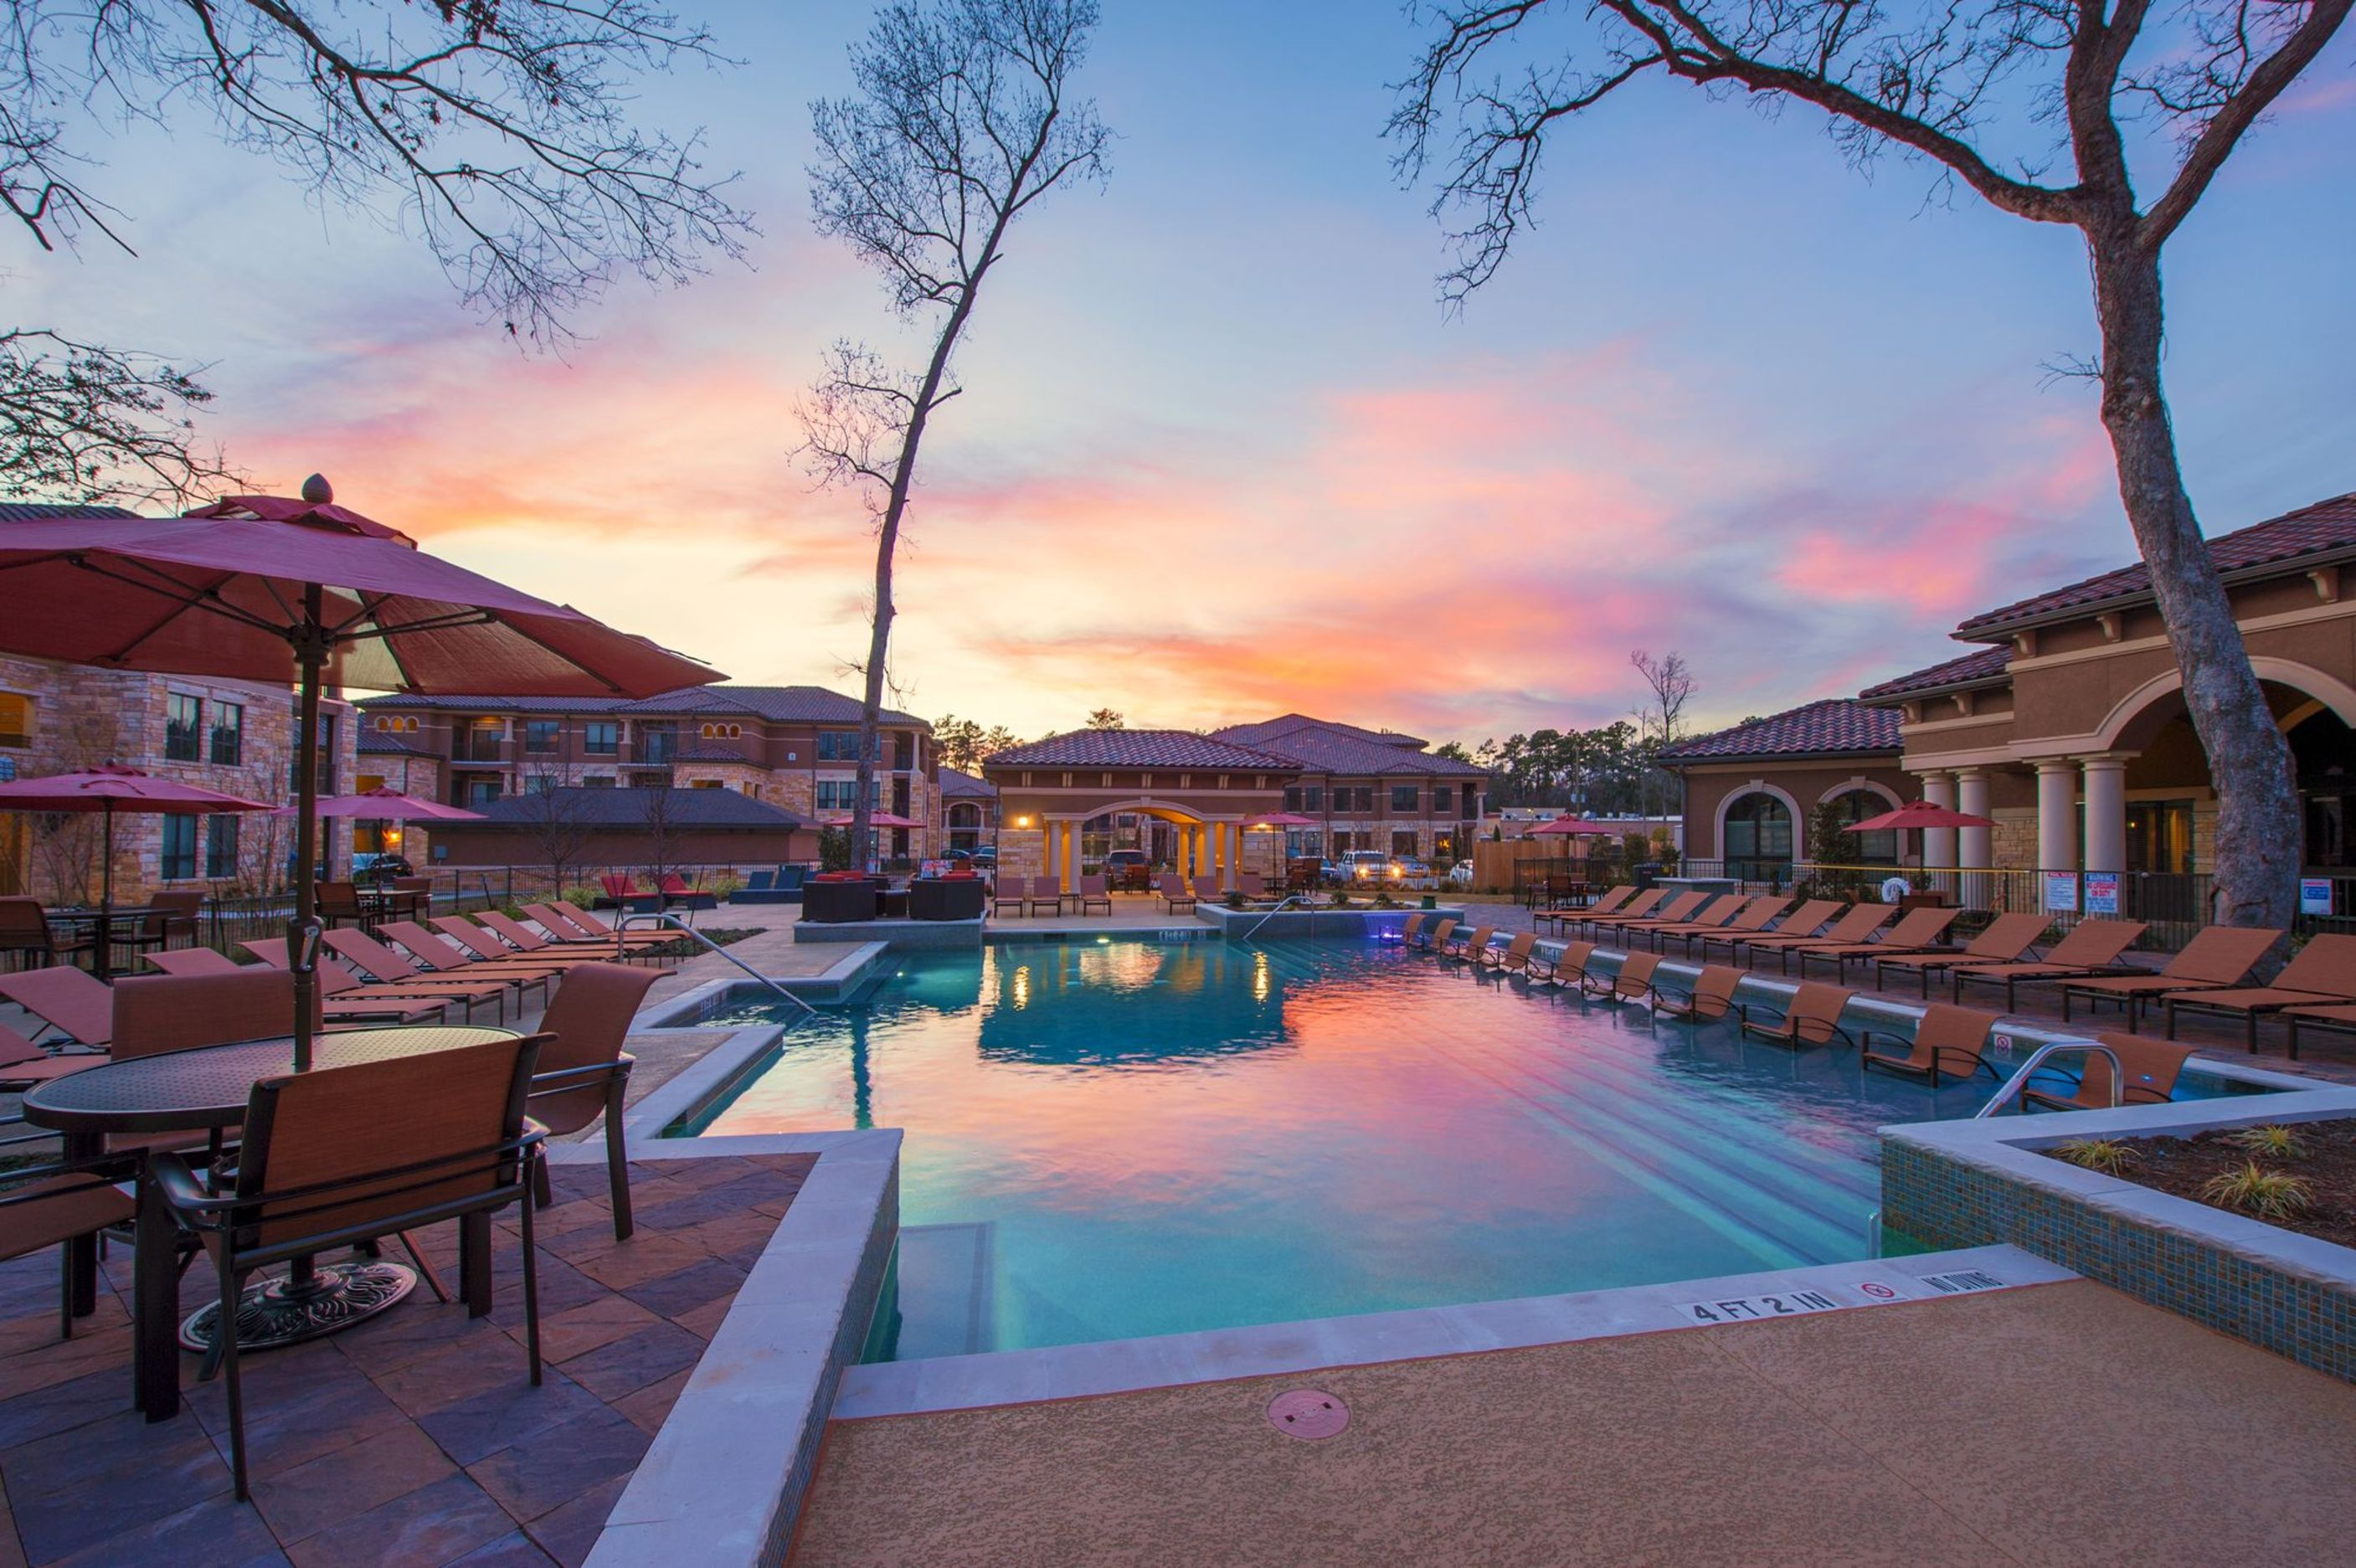 Sunset view of pool with landscaping and patio seating